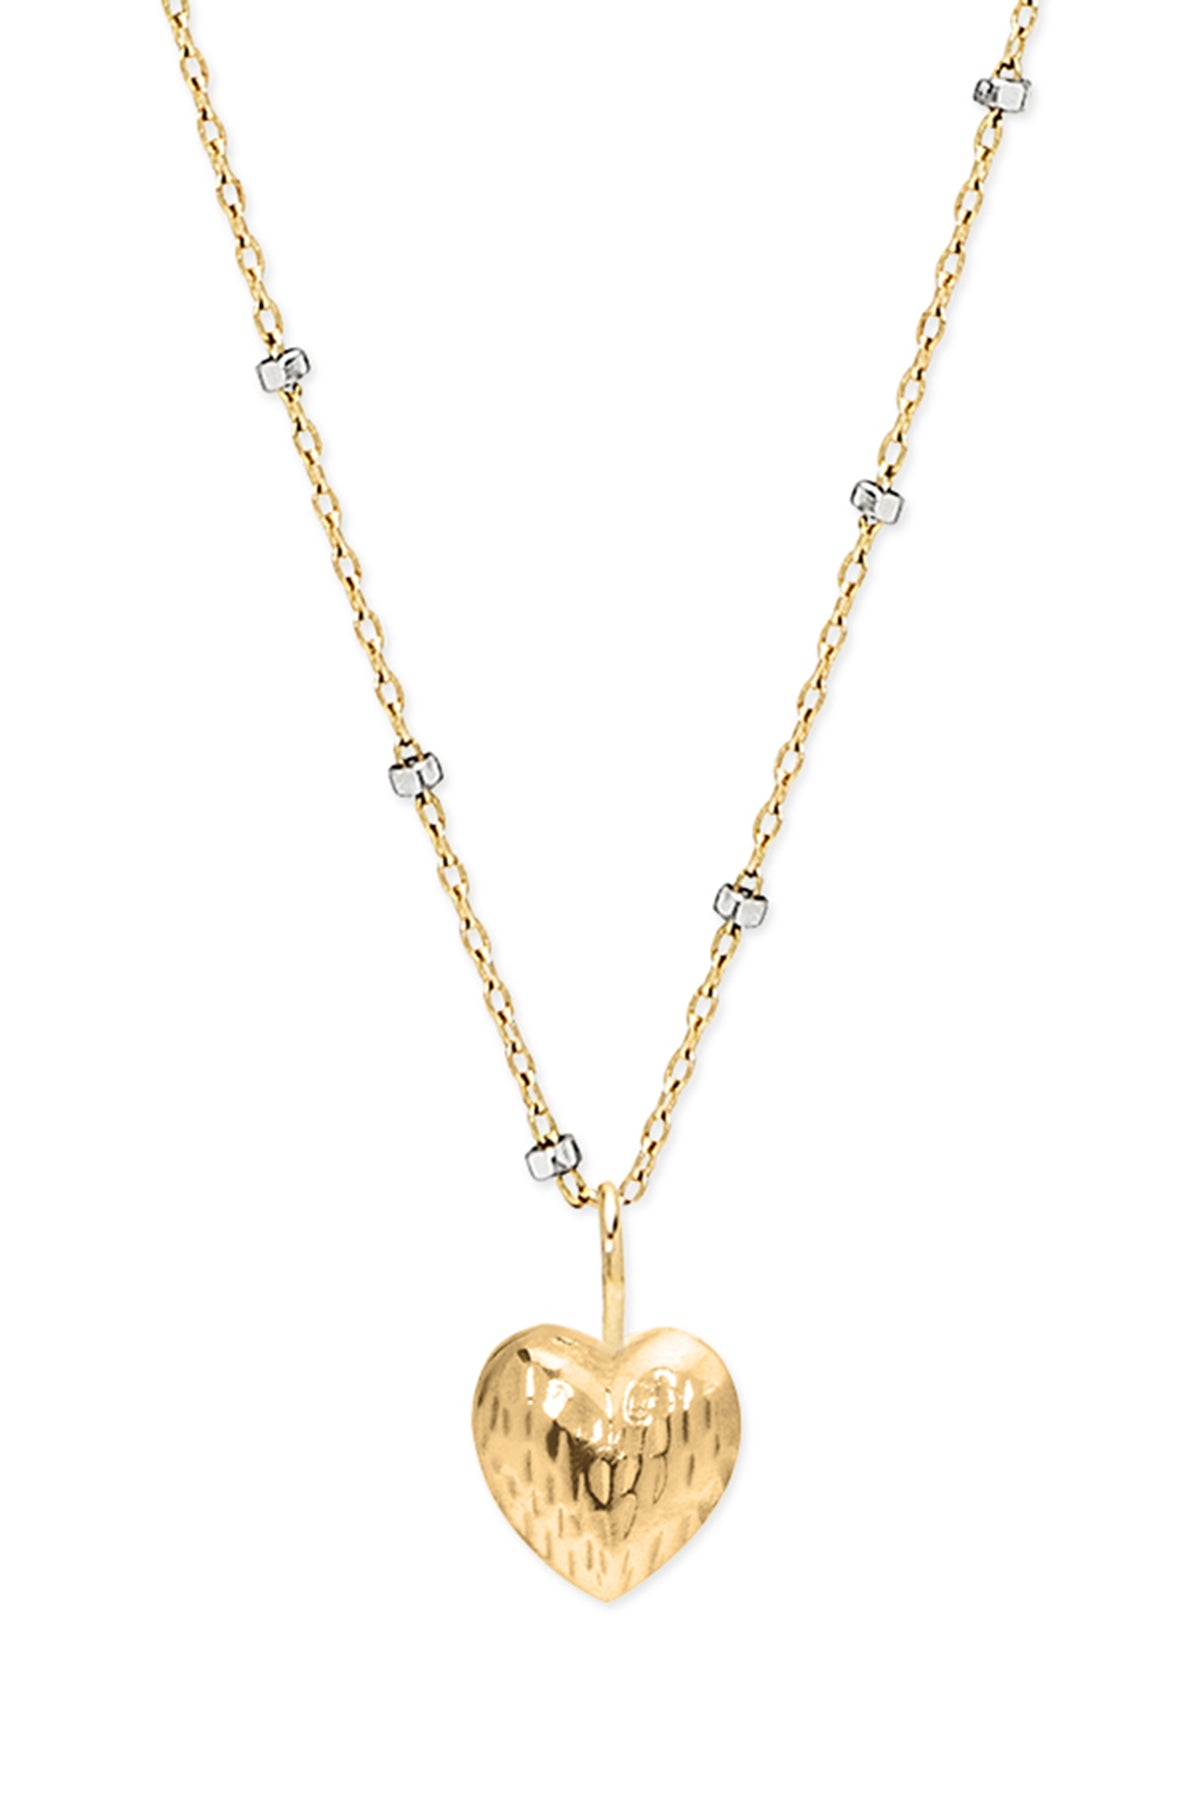 DOUBLE FACE HEART NECKLACE BY PHYLLIS AND ROSIE